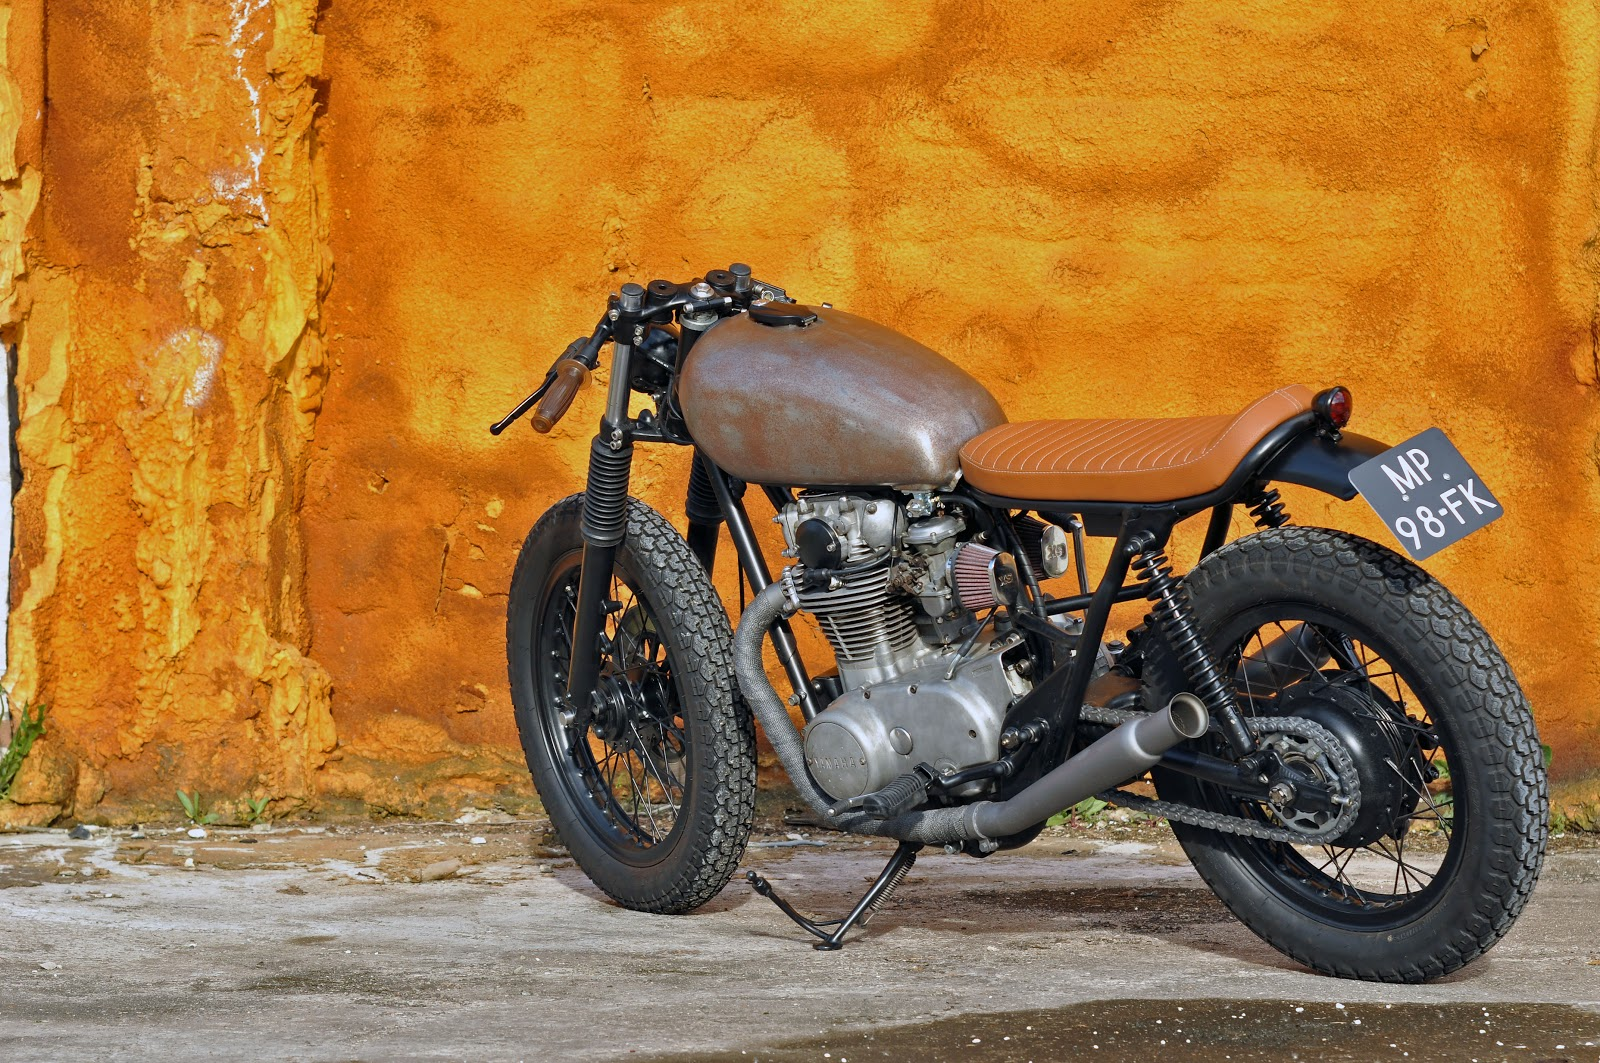 1973 Triumph TR6 Wiring Harness furthermore Triumph Amal Concentric Carb as well Yamaha XS650 Bobber also Triumph Bonneville Engine Diagram moreover Triumph Motorcycle Wiring Diagram. on t140 wiring harness